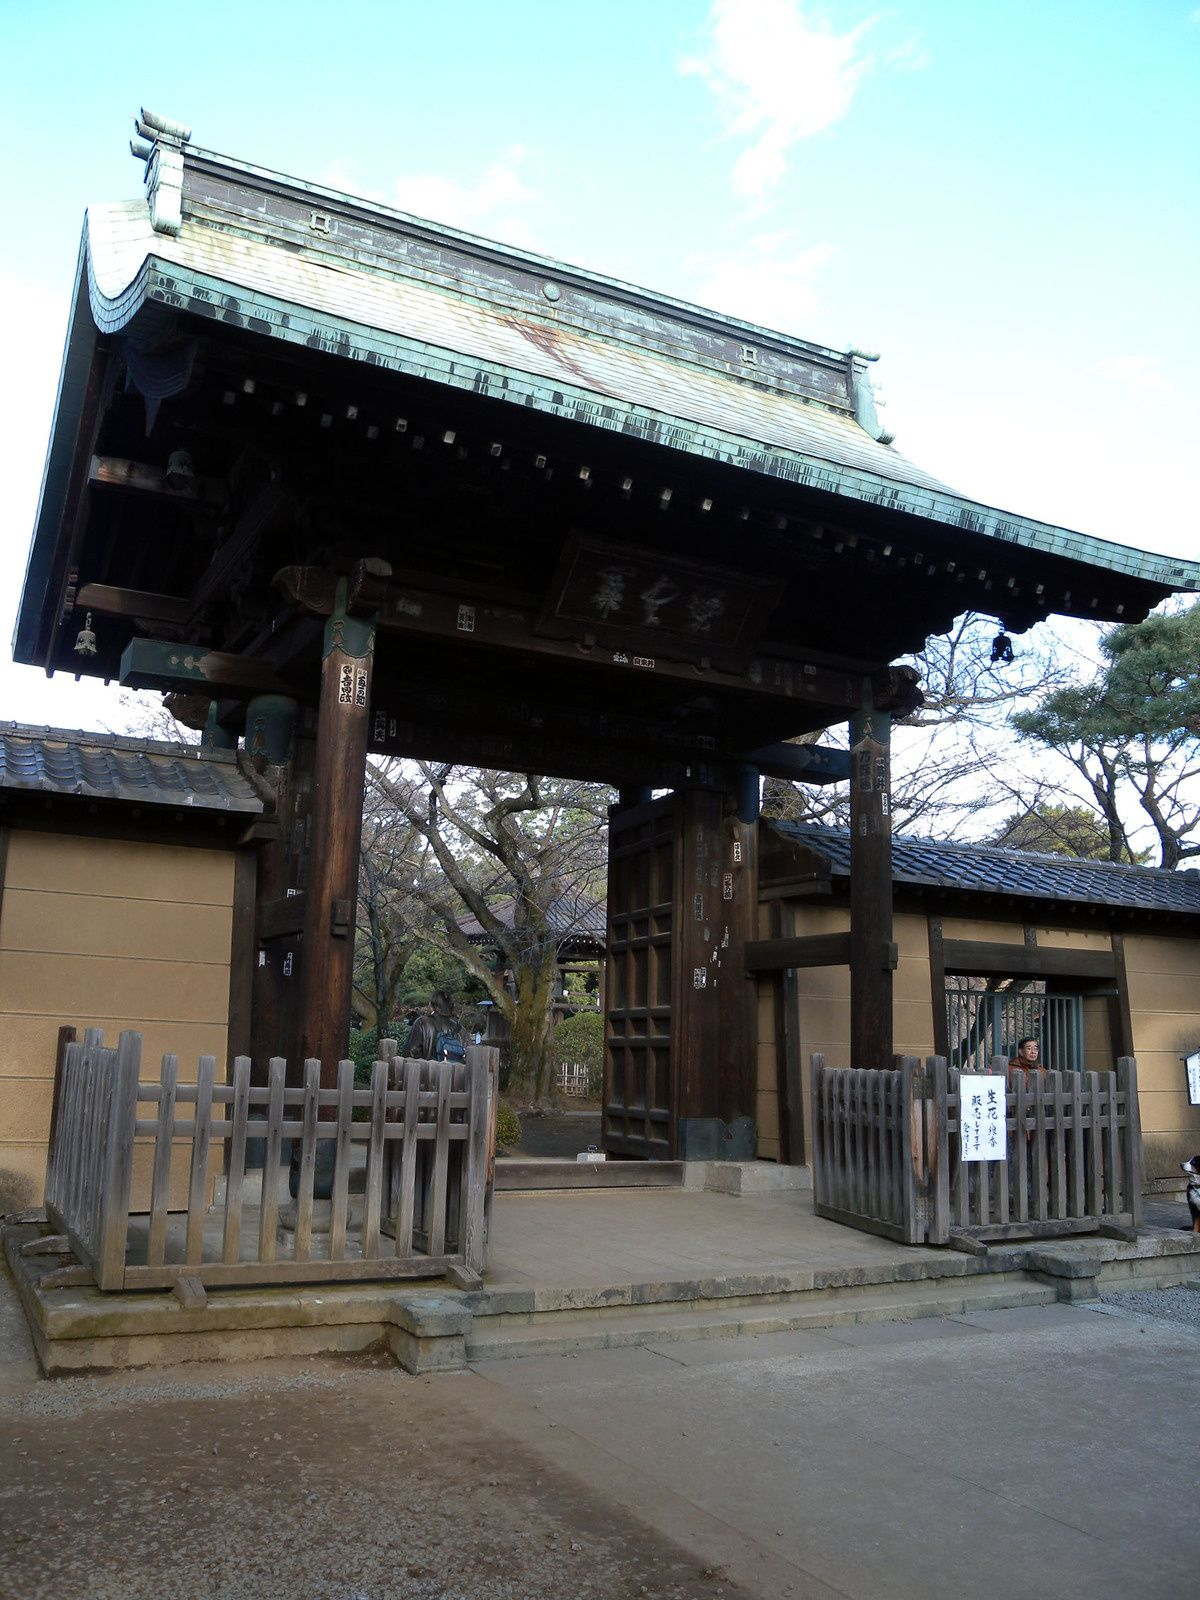 山門 The main gate of a Buddhist temple